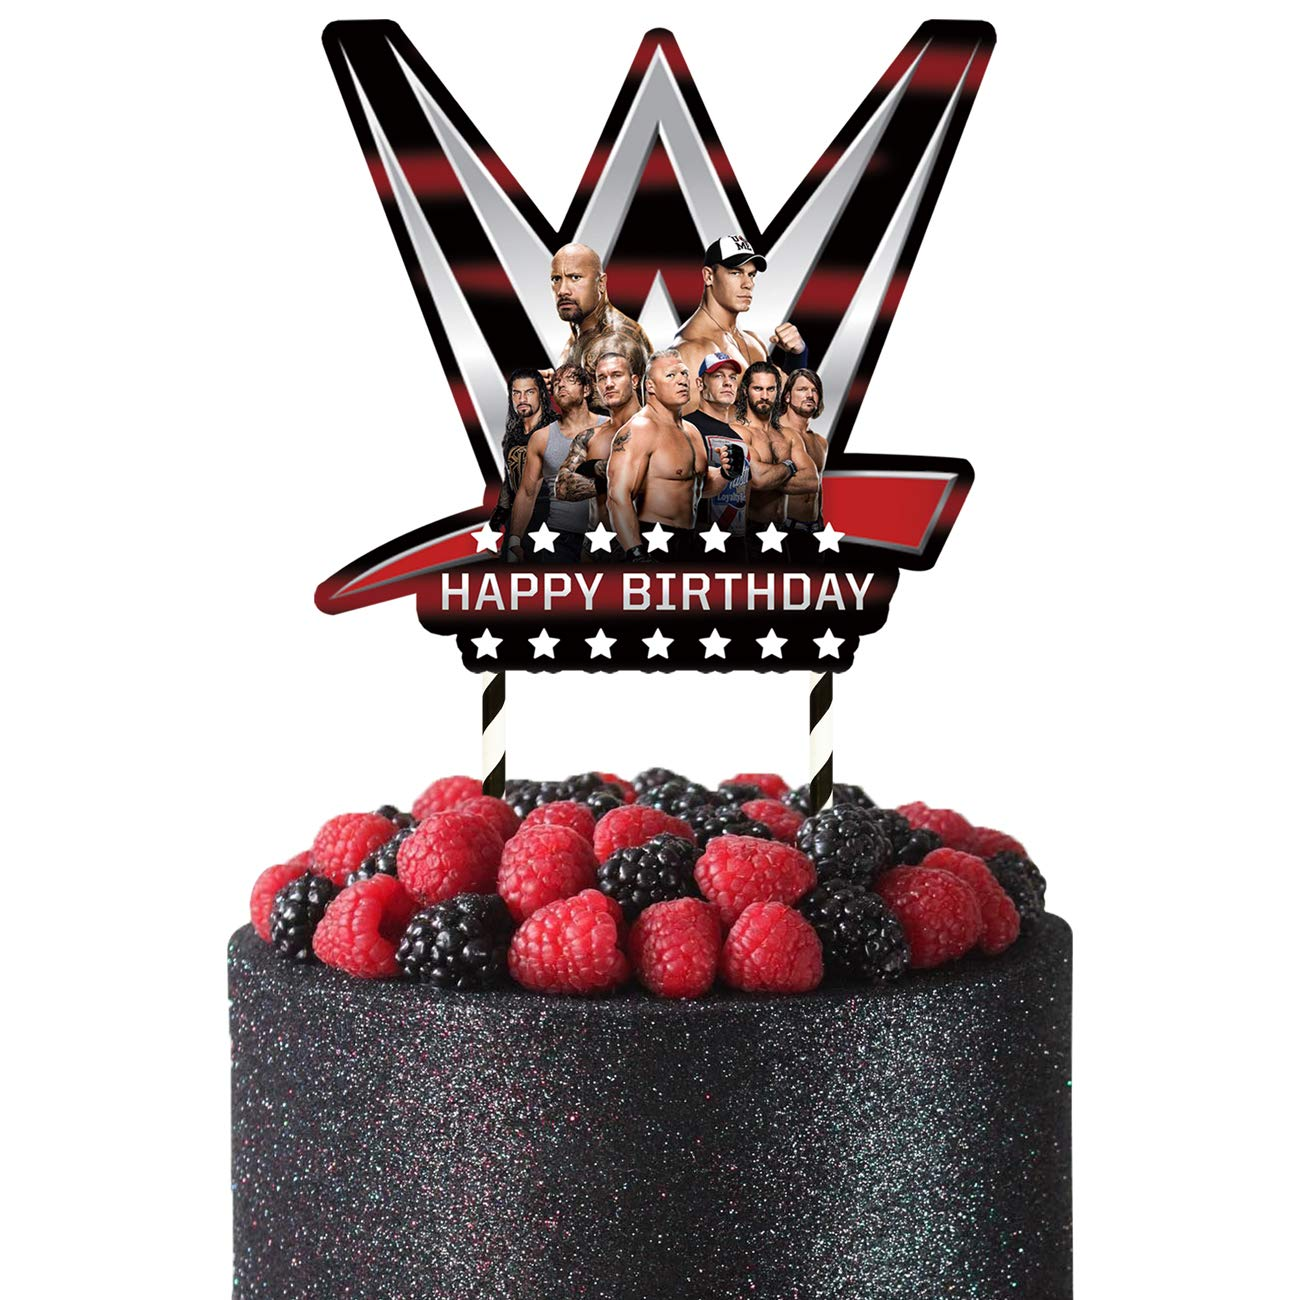 Tremendous Wwe Cake Topper Decorations Birthday Party Wwe Theme For Boys 1 Personalised Birthday Cards Cominlily Jamesorg